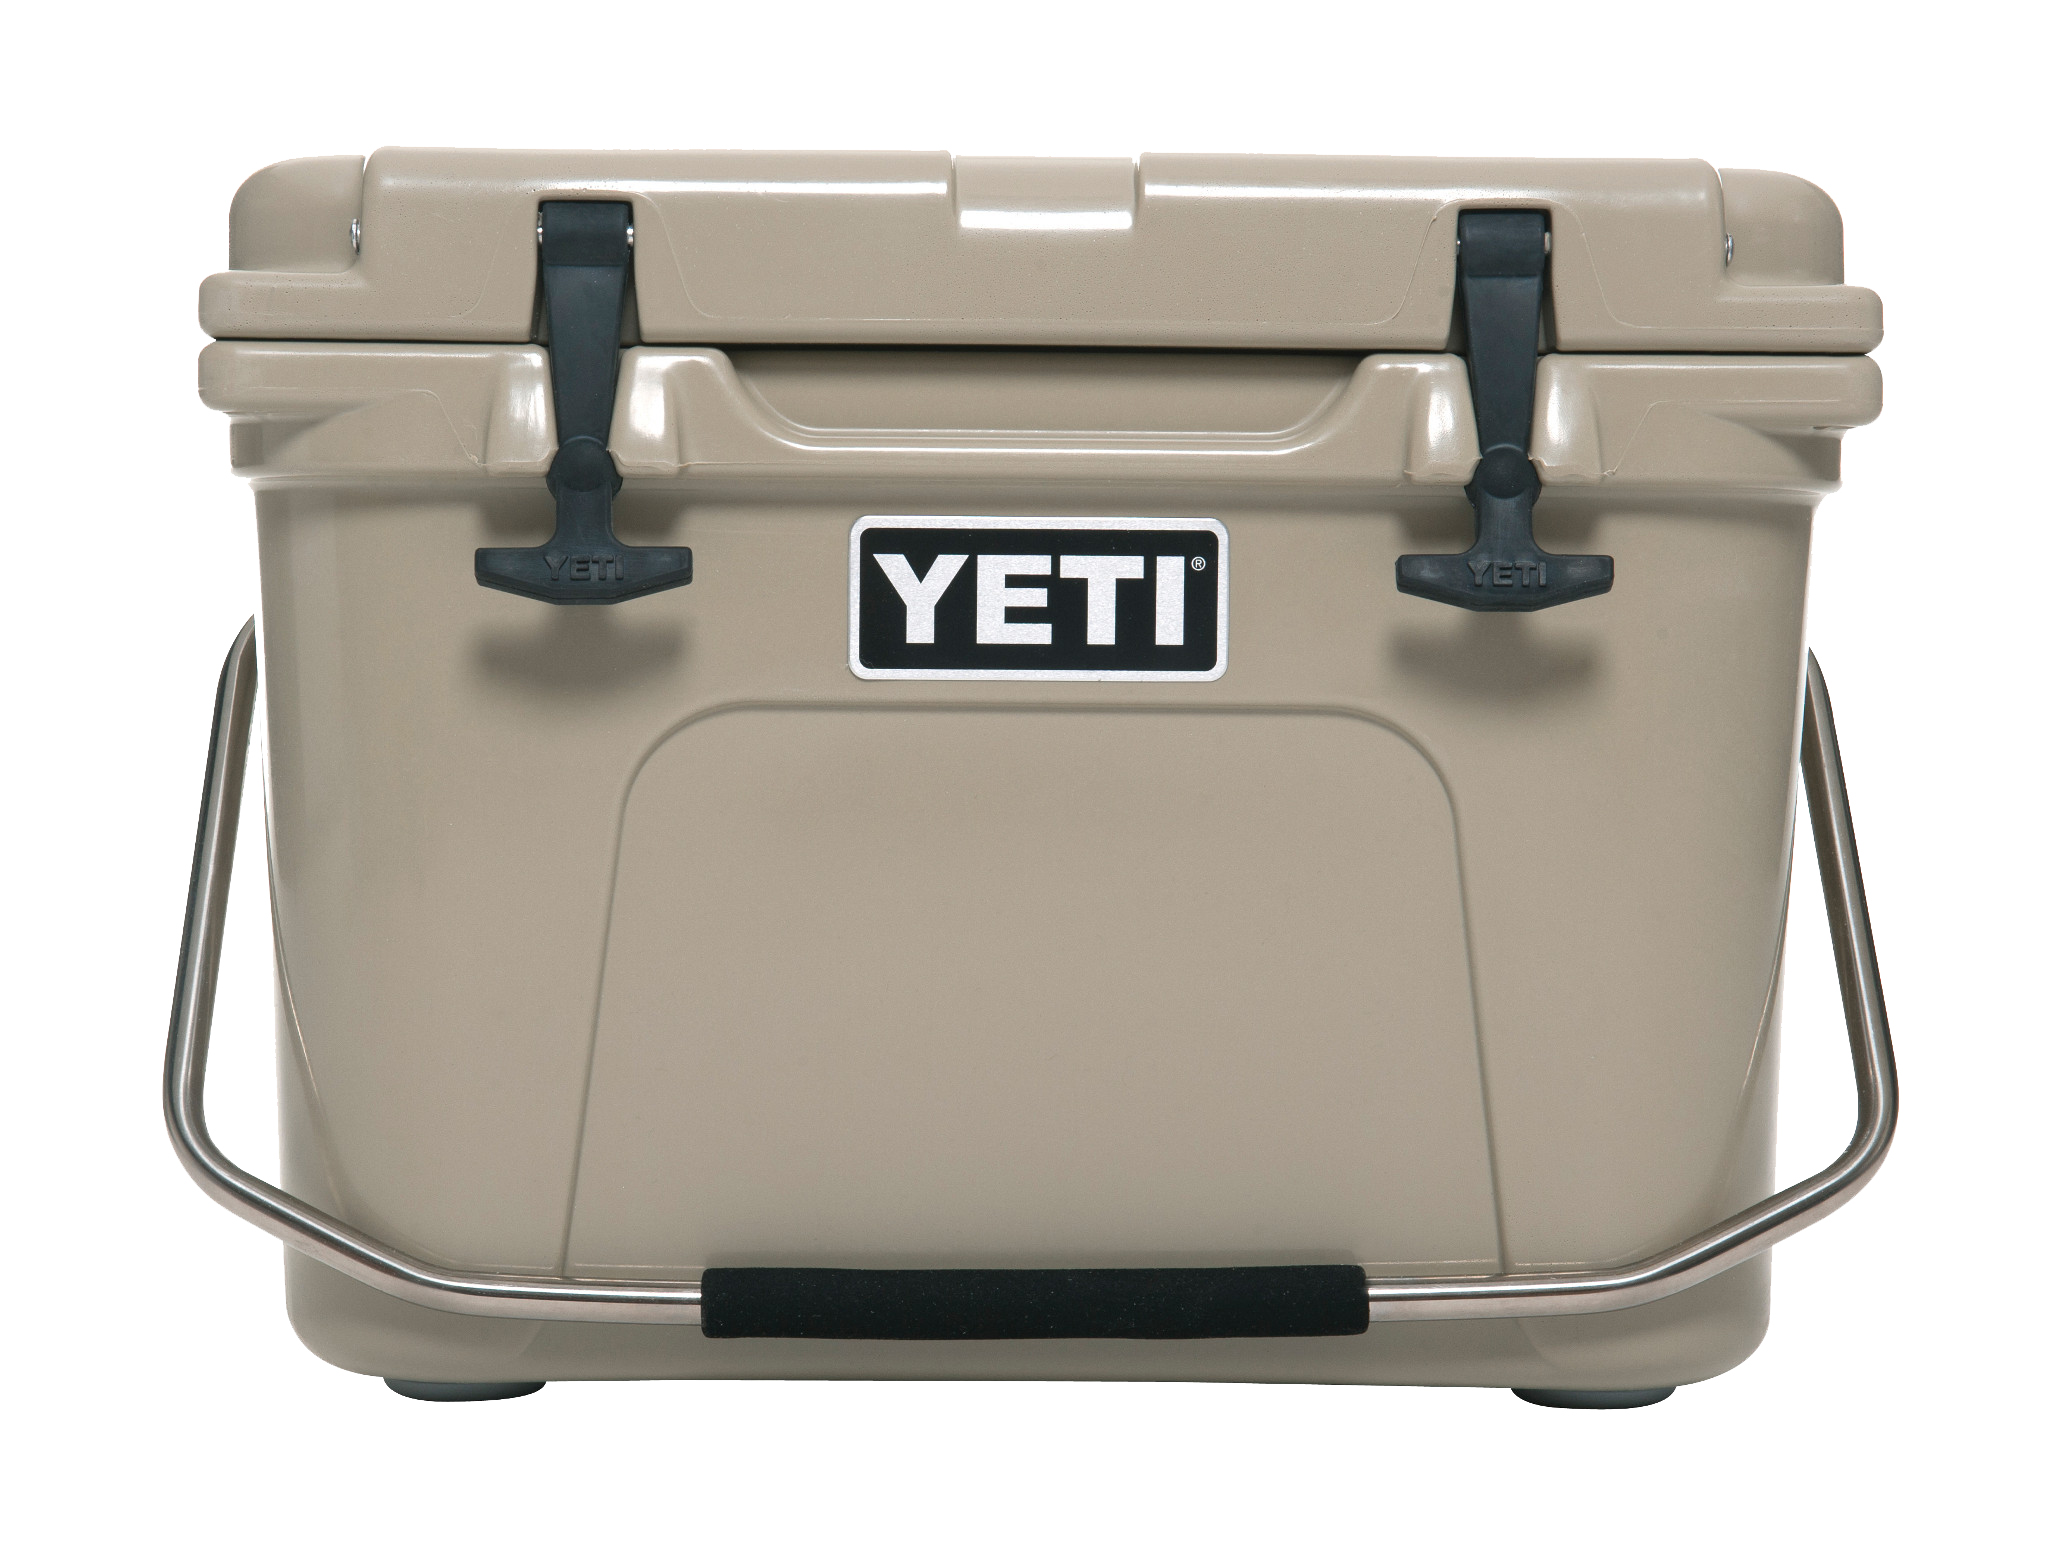 Yeti cooler clipart svg library download Yeti Roadie 20 Cooler | MEC svg library download